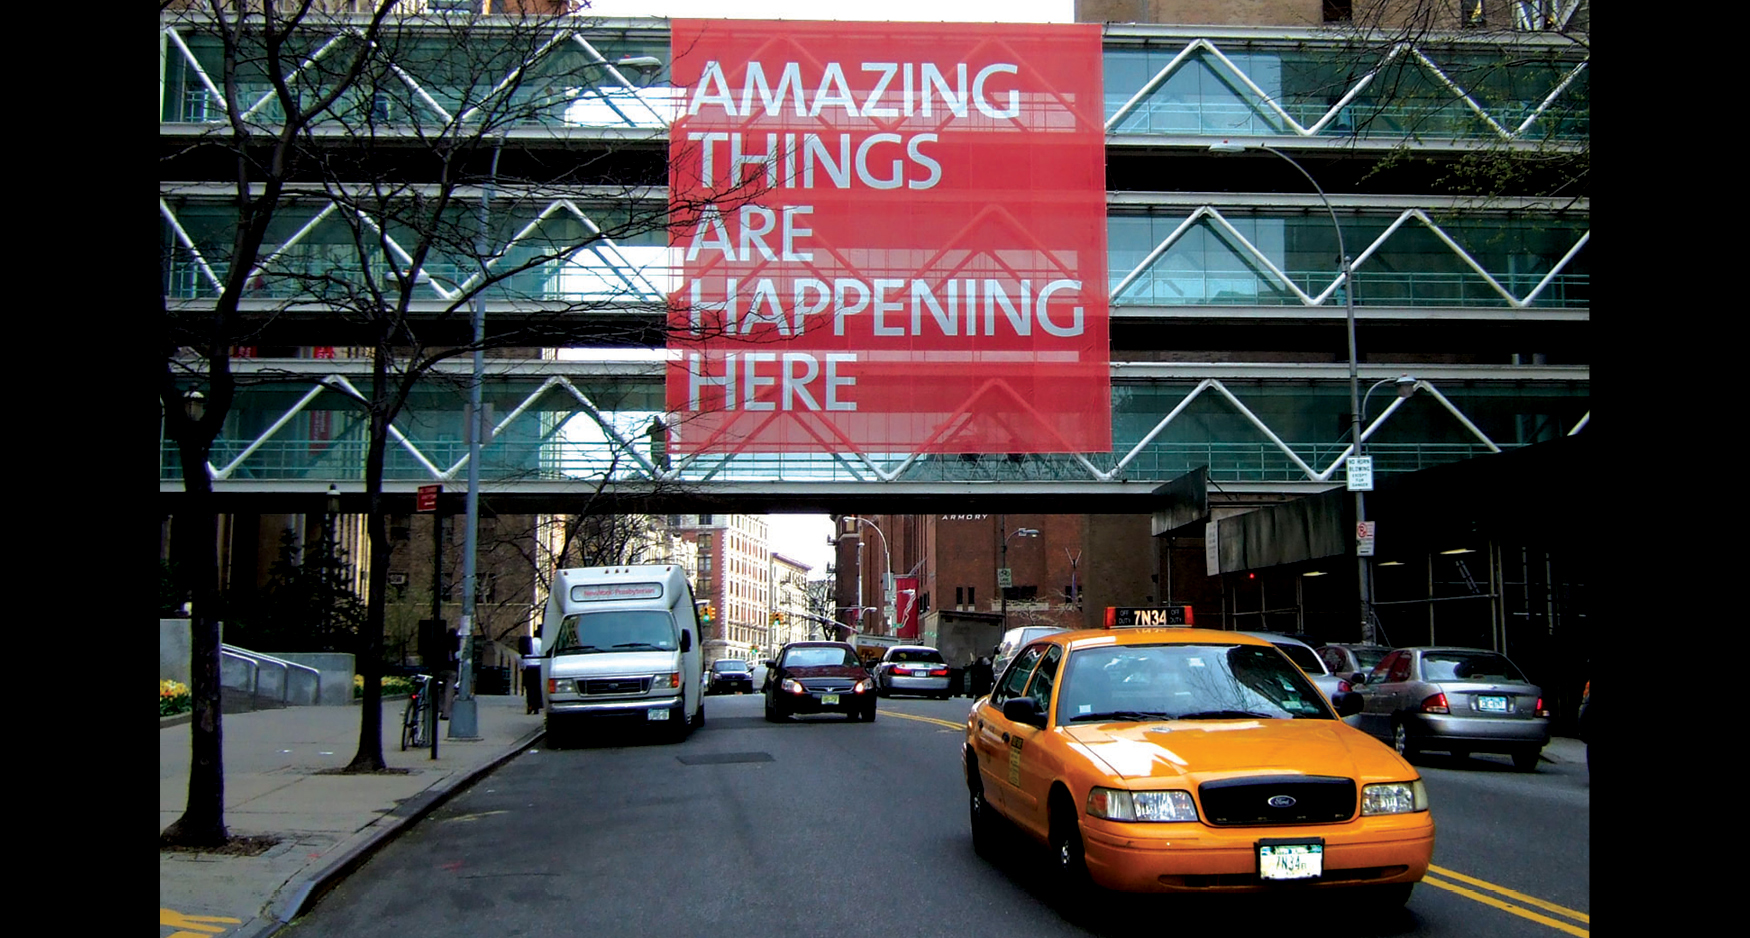 BP Large Images6 - AMAZING THINGS CAMPAIGN - ICON BANNER